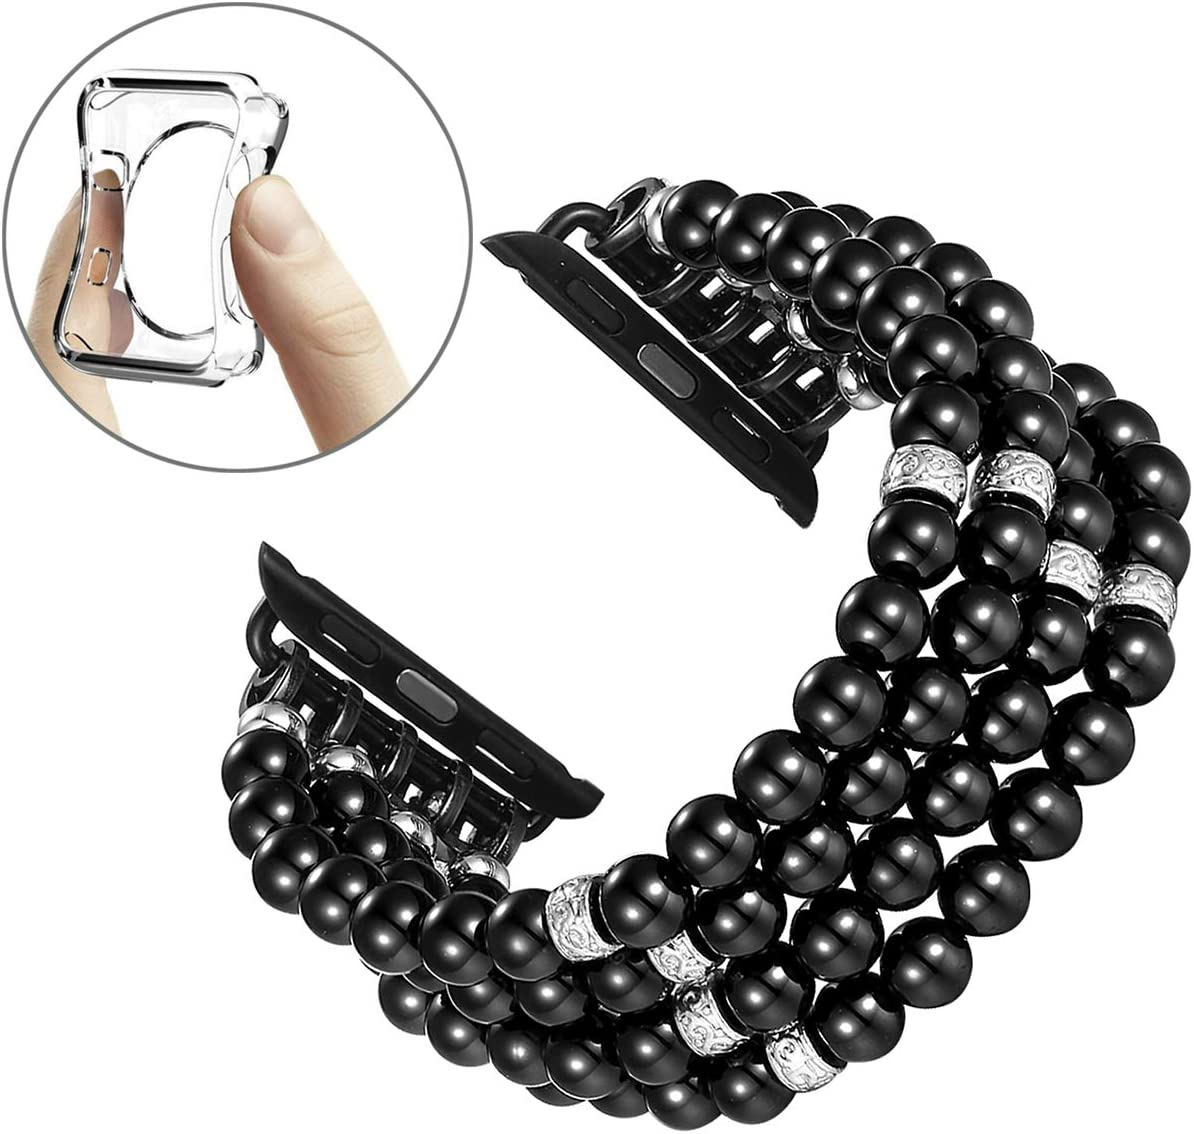 Fastgo Compatible With Apple Watch Bands 38mm 40mm, Handmade Beaded Elastic Stretch Pearl Bracelet Replacement Strap Women Girls for IWatch SE& Series 6/ 5/4/3/2/1(Black - 38/40mm)